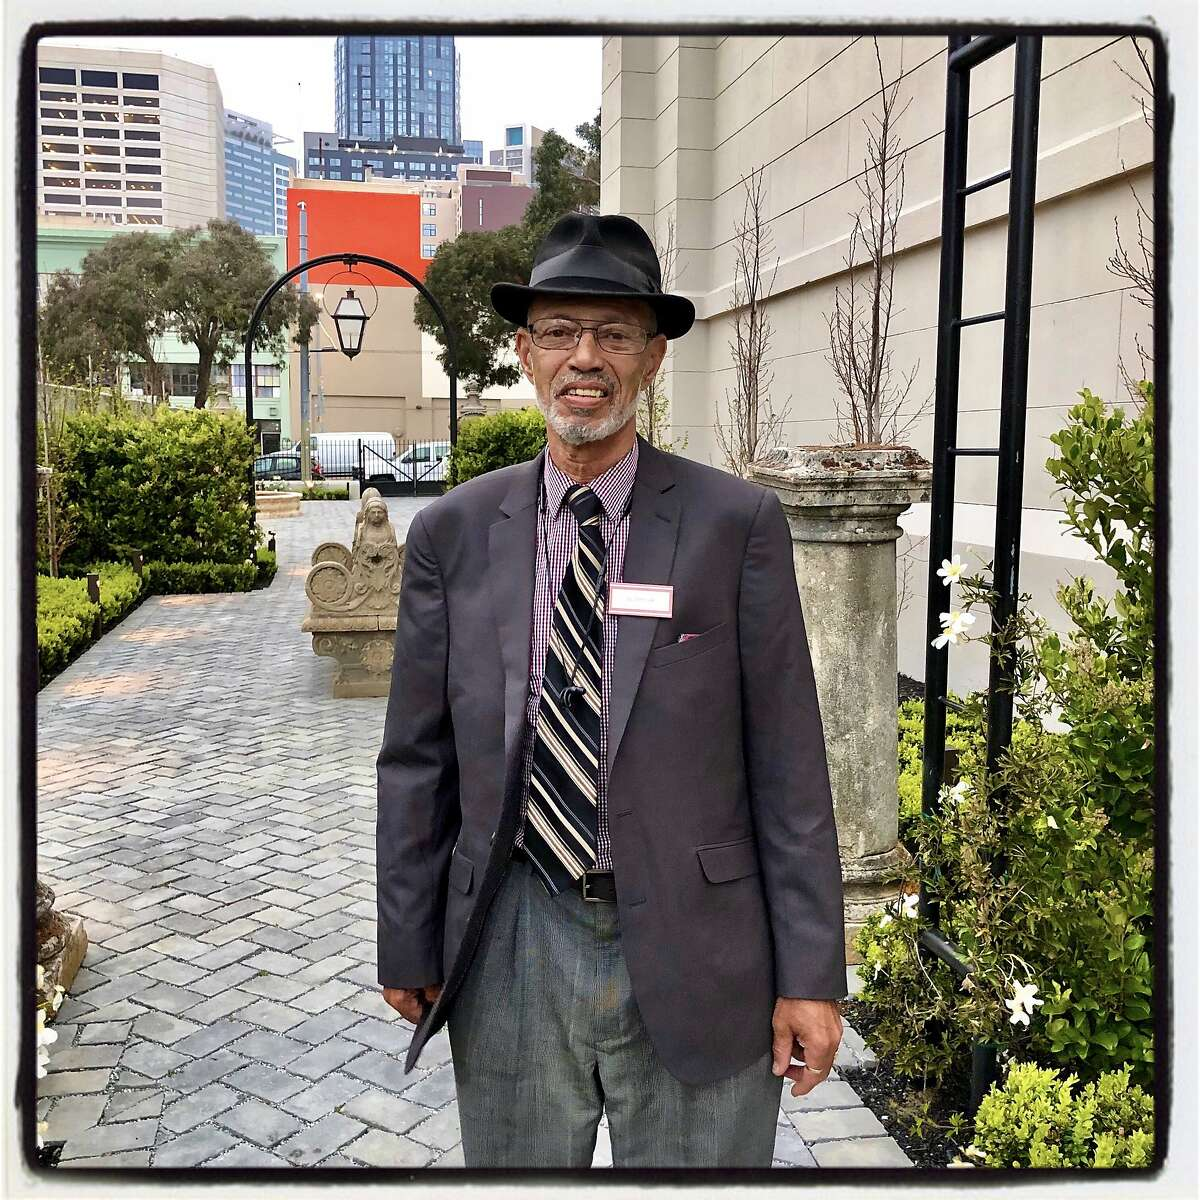 Code Tenderloin founder Del Seymour at a St. Anthony's Foundation fundraiser. April 2019